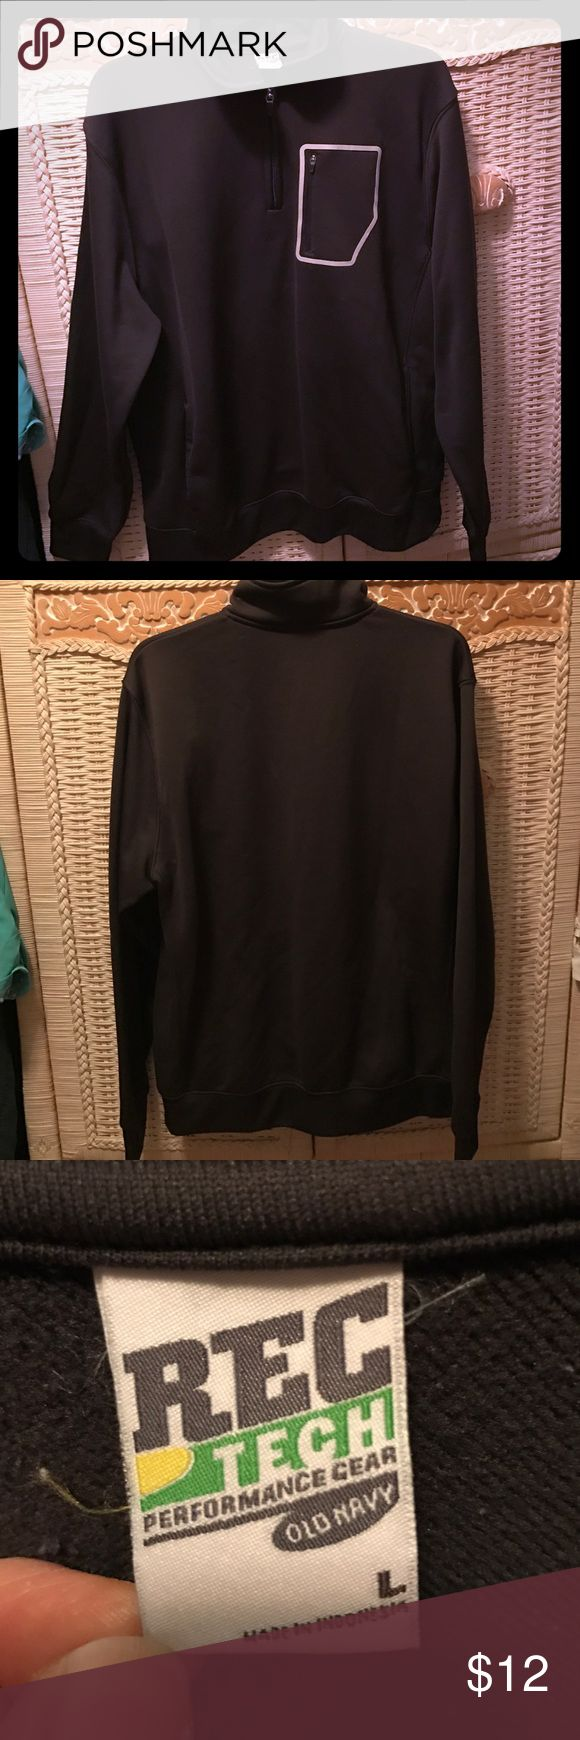 Old Navy zip-up pullover This Men's pullover has a zipper pocket for keys, smaller cellphone or iPod! 2 pockets in the front. Great condition! Some interior pilling. Old Navy Shirts Sweatshirts & Hoodies